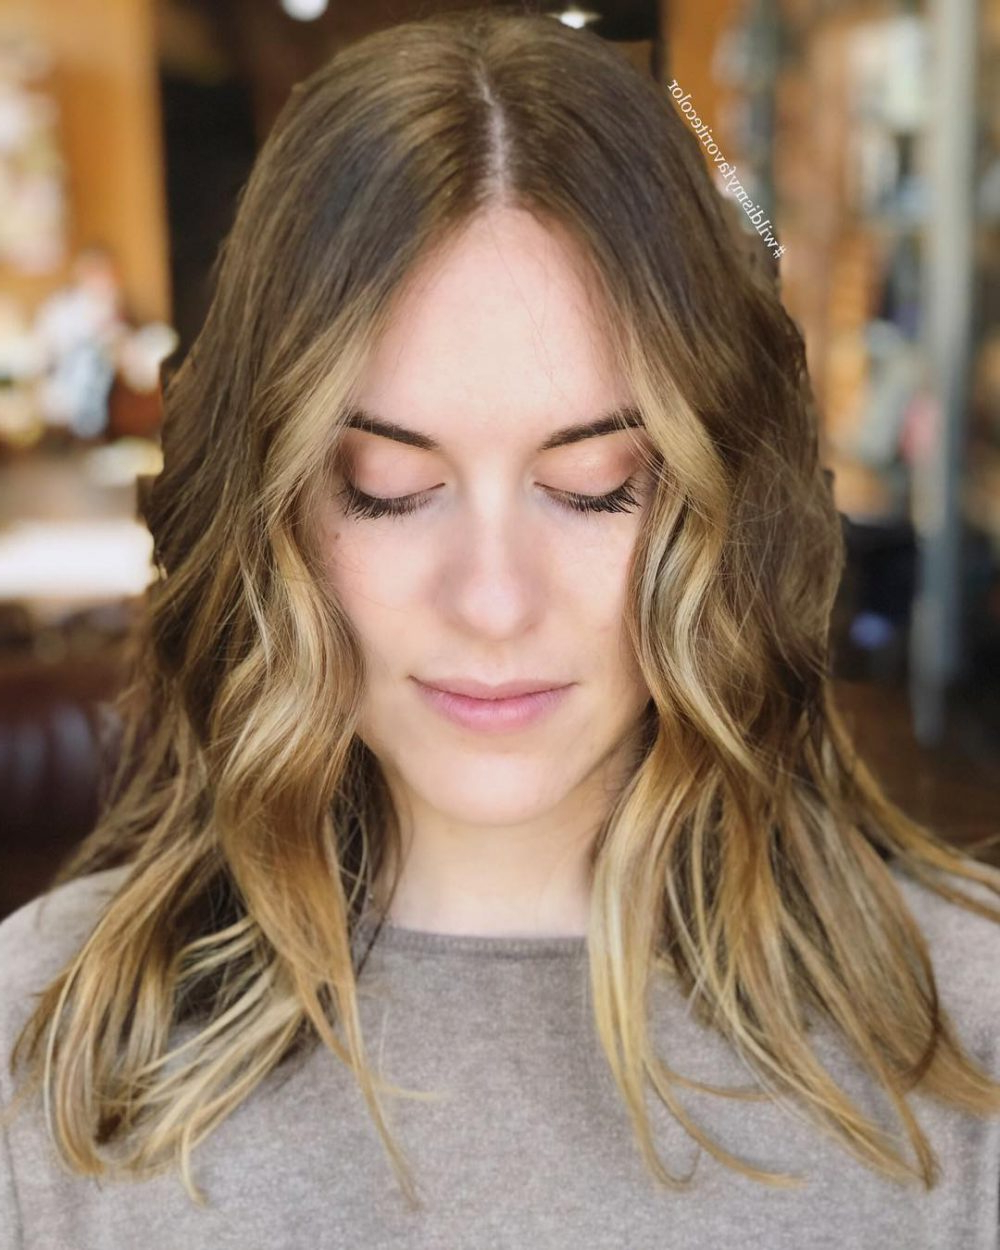 17 Flattering Medium Hairstyles For Round Faces In 2019 Throughout Widely Used Medium Haircuts For Fat Face (Gallery 6 of 20)